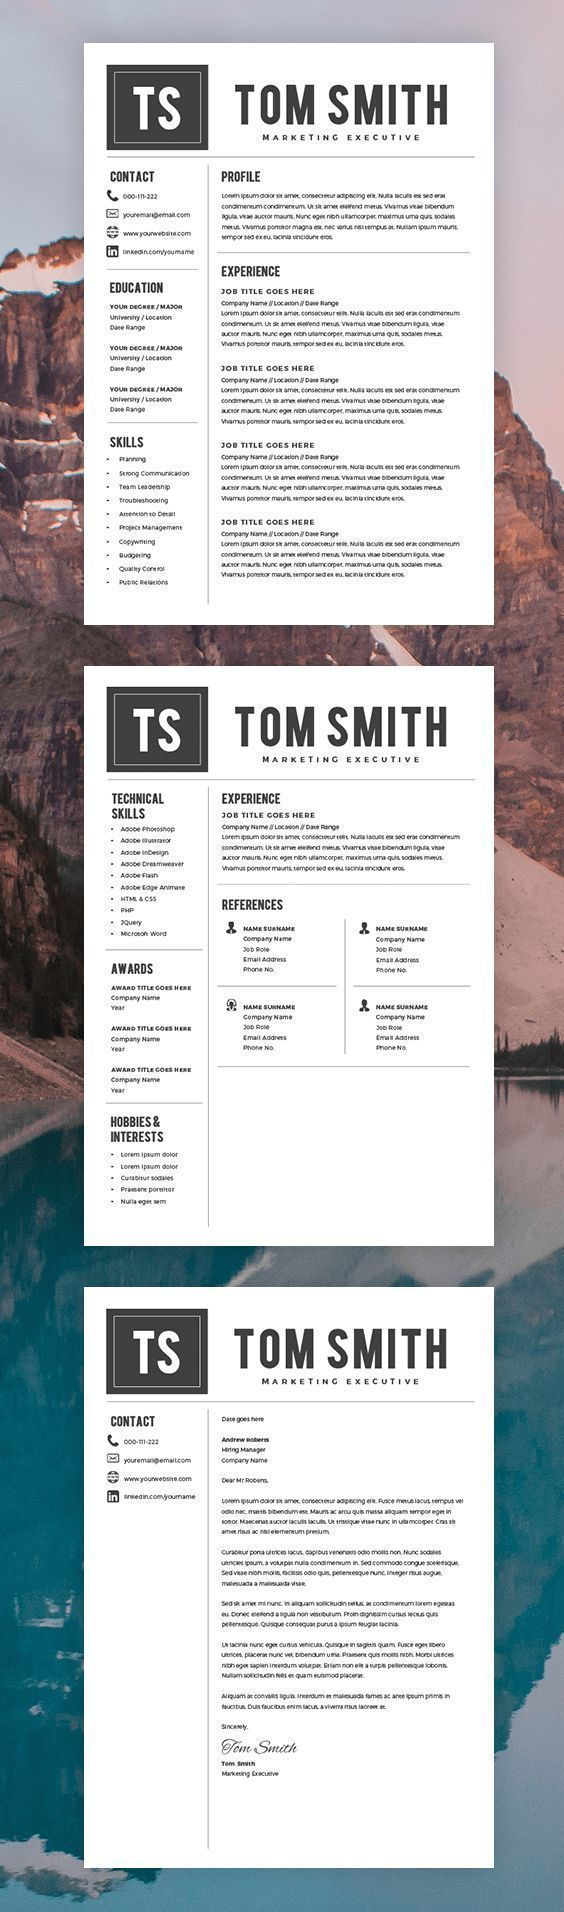 cover letter sample for job application for freshers%0A Modern Resume Template  Free Cover Letter  CV Template  MS Word on Mac